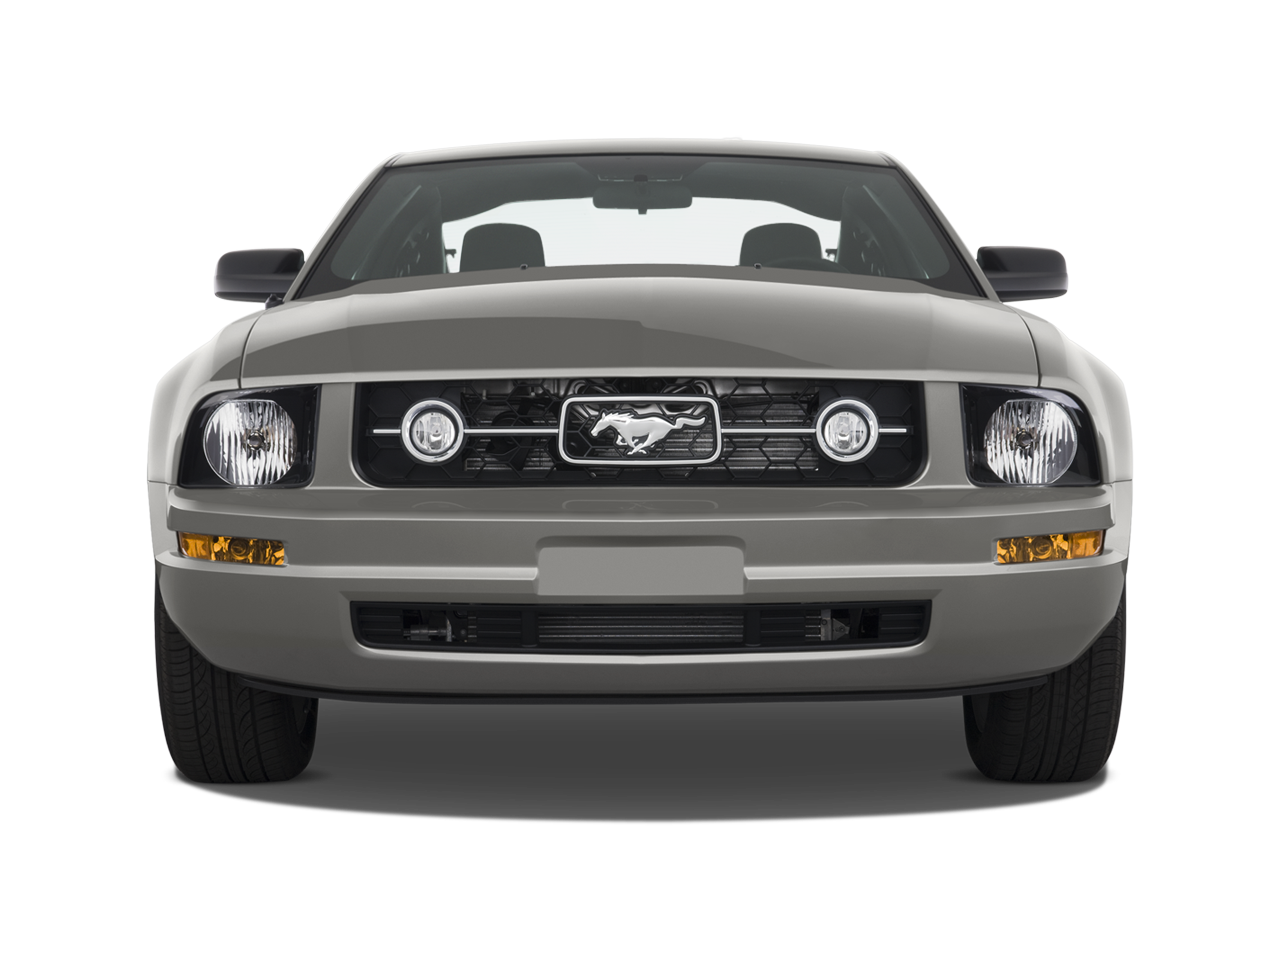 2008 ford mustang shelby gt500kr ford sport coupe review. Black Bedroom Furniture Sets. Home Design Ideas